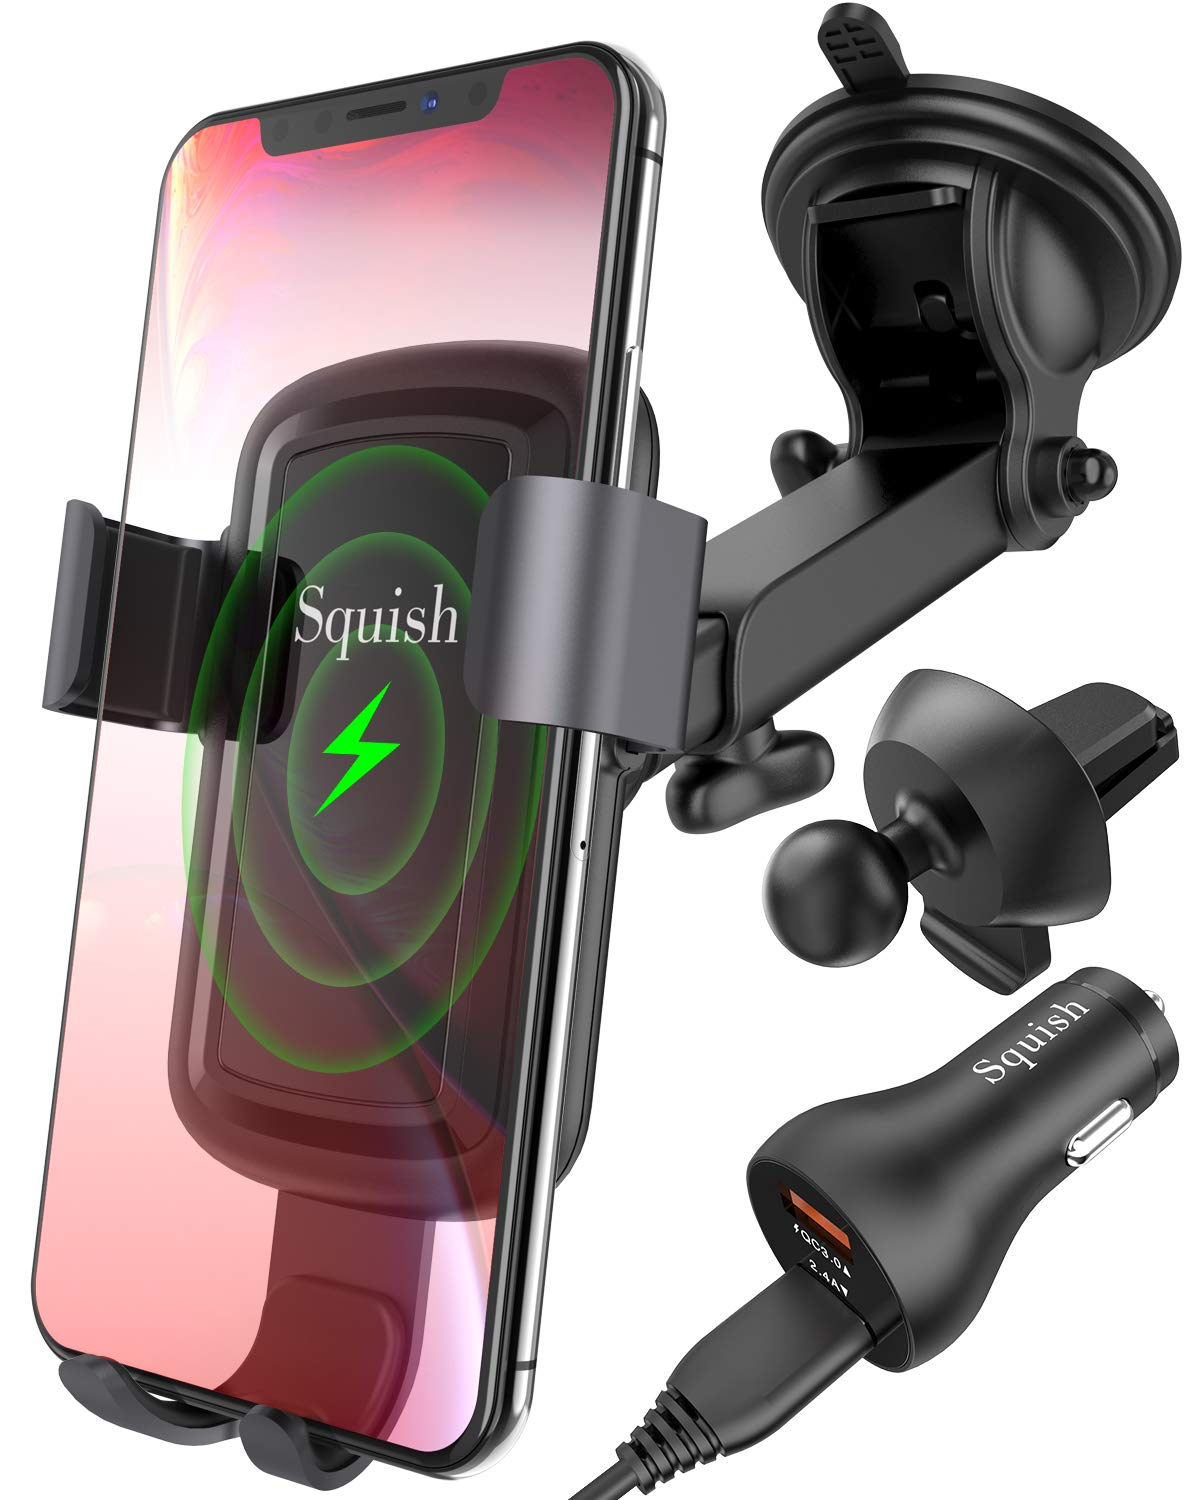 Squish Wireless Car Charger, Fast Charging Wireless Car Mount with Quick Charging 3.0 Car Charger, Air Vent Holder Included, Car Phone Mount for iPhone Xs MAX/XR/XS/X/8/8 Plus Samsung Galaxy S10/S9/S8 by Squish